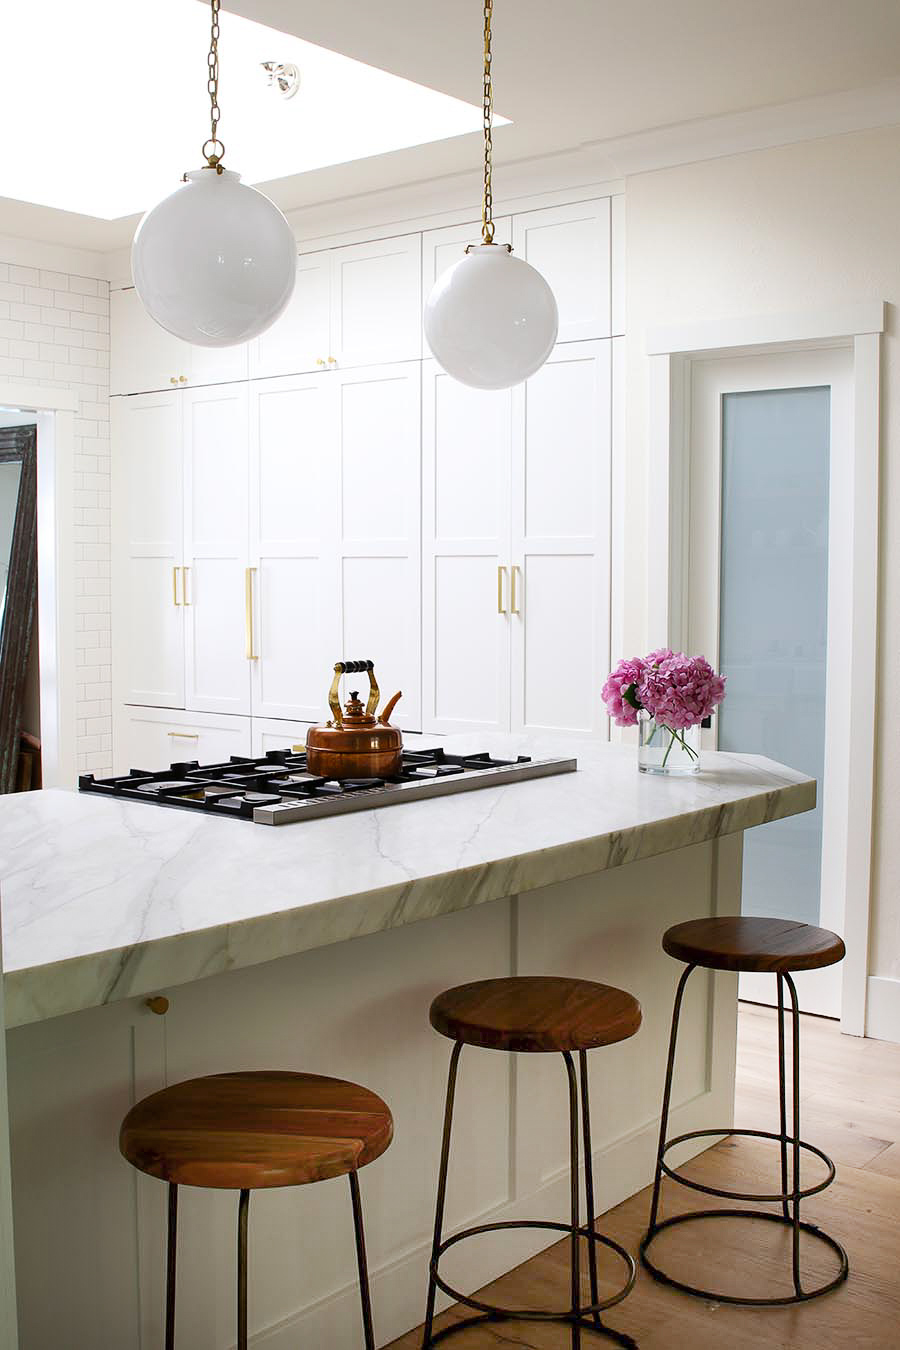 integrated appliances in white kitchen